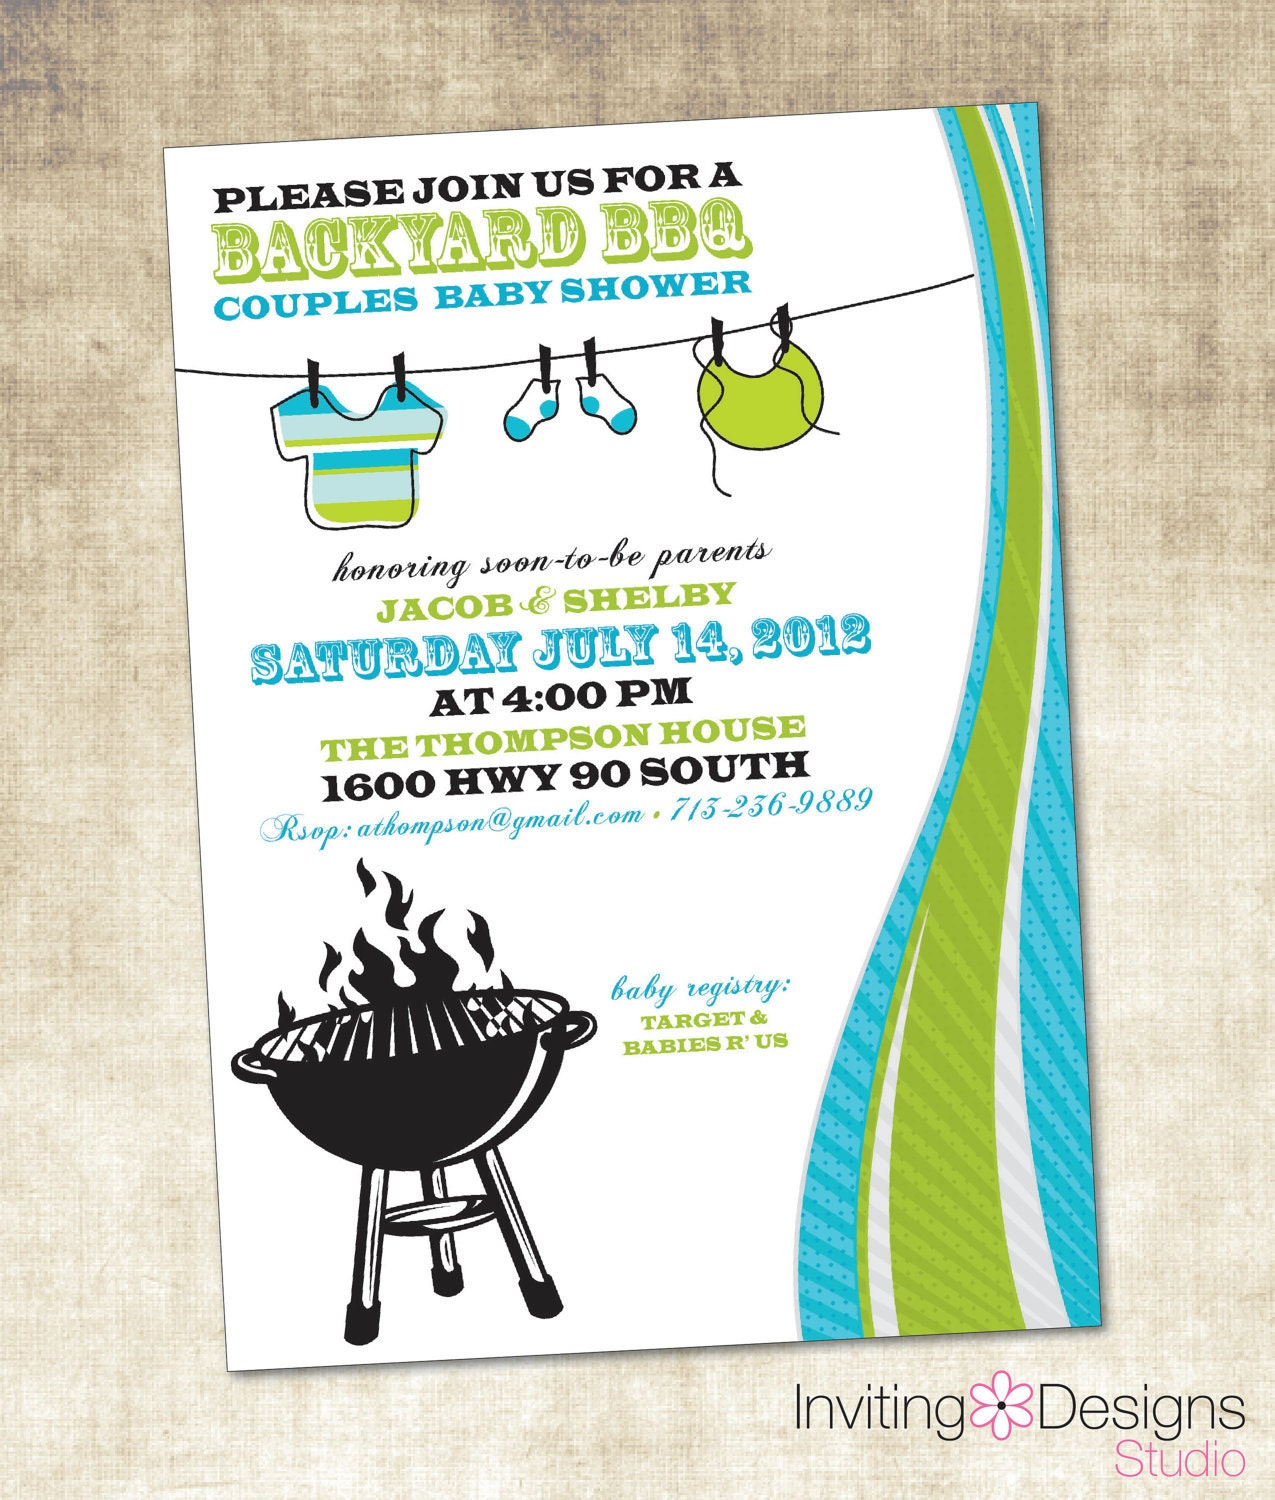 Baby Shower Bbq Invitation Wording | www.topsimages.com